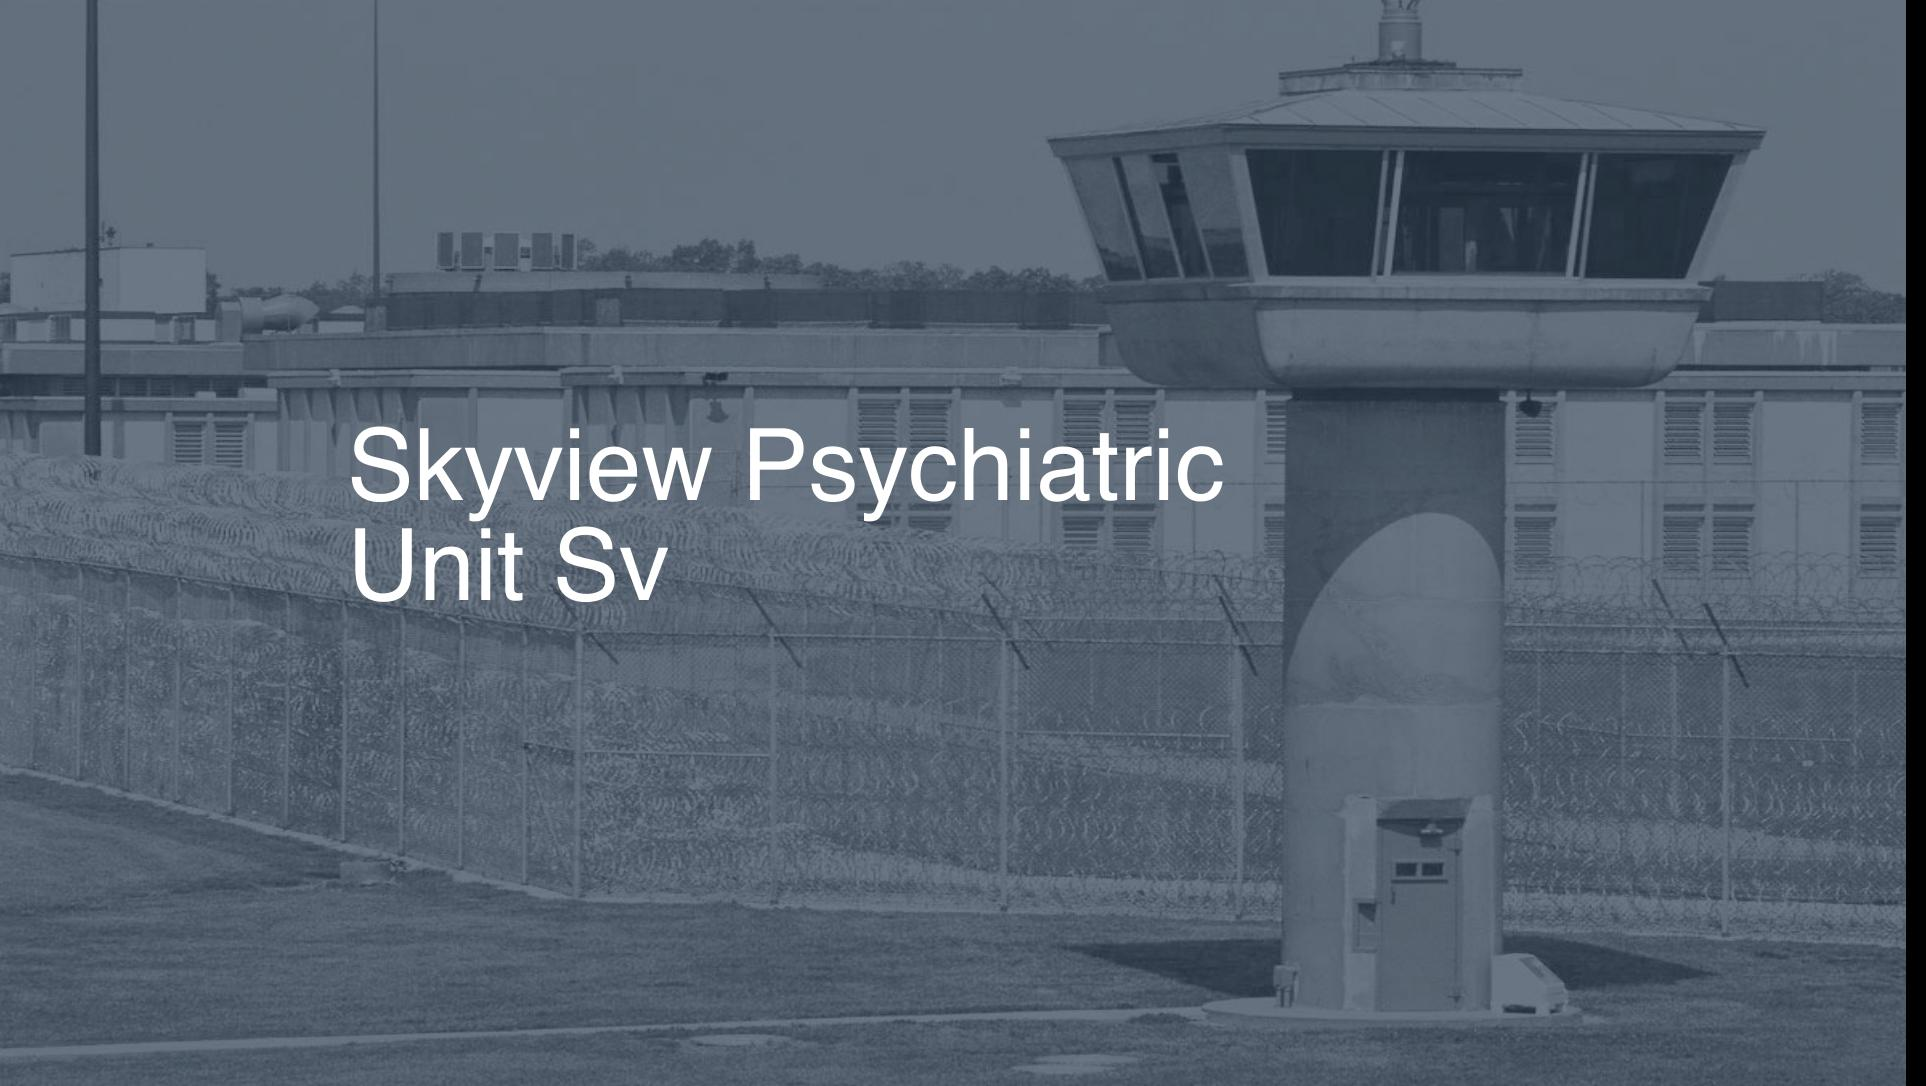 Skyview Psychiatric Unit (SV) correctional facility picture